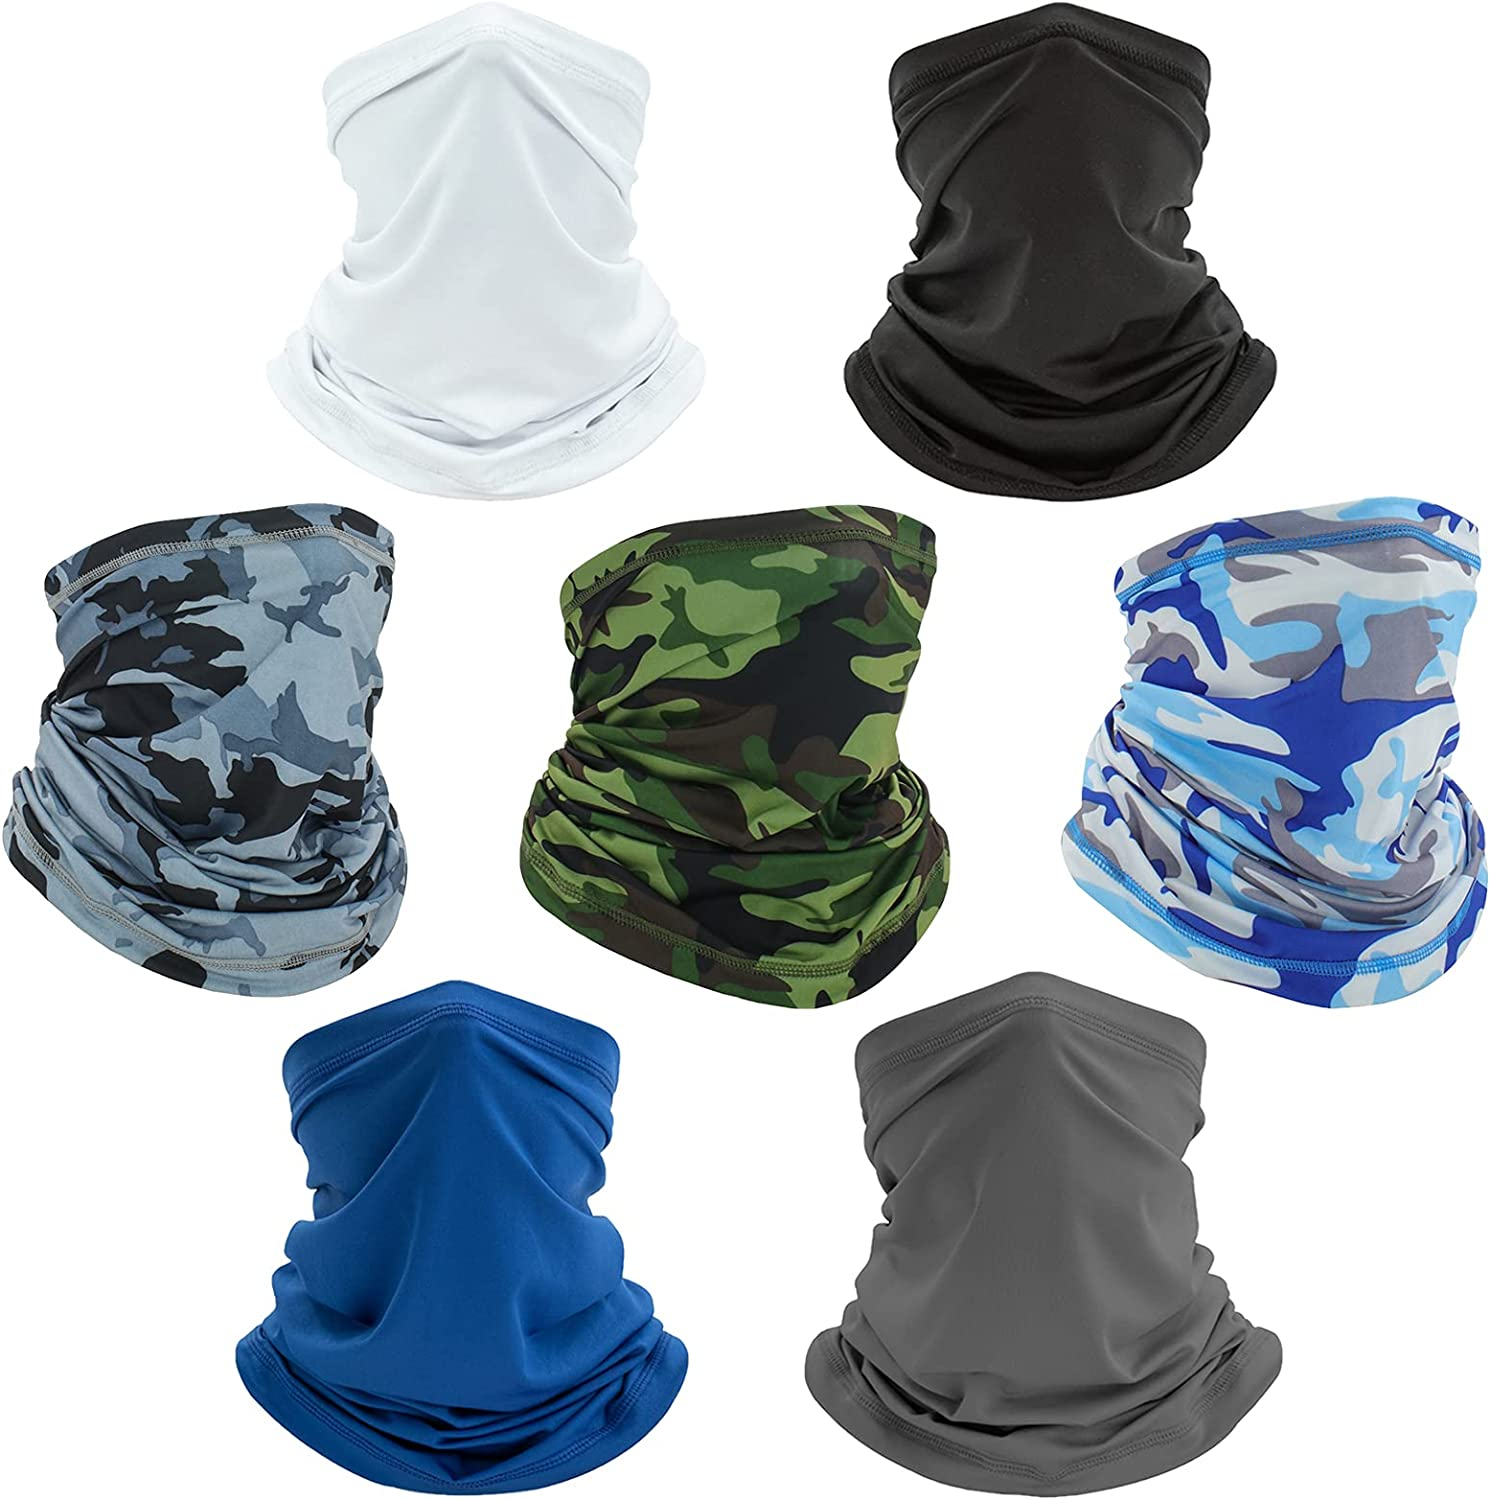 Scarf of Man/Women,Outdoor Sun UV Protection,Cool Lightweight, Breathable,Windproof